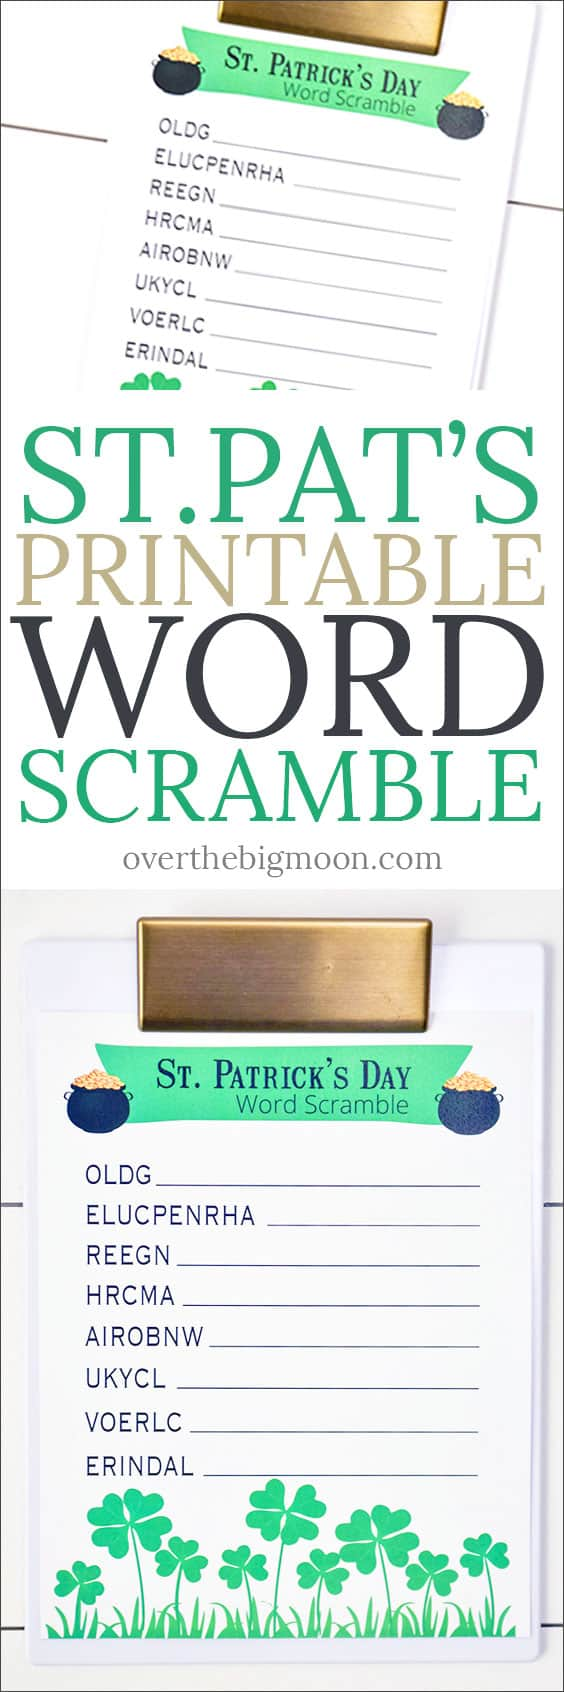 This St. Patrick's Day Kids Word Scramble is perfect for a St.Patrick's Day activity! Come download the free printable! overthebigmoon.com!